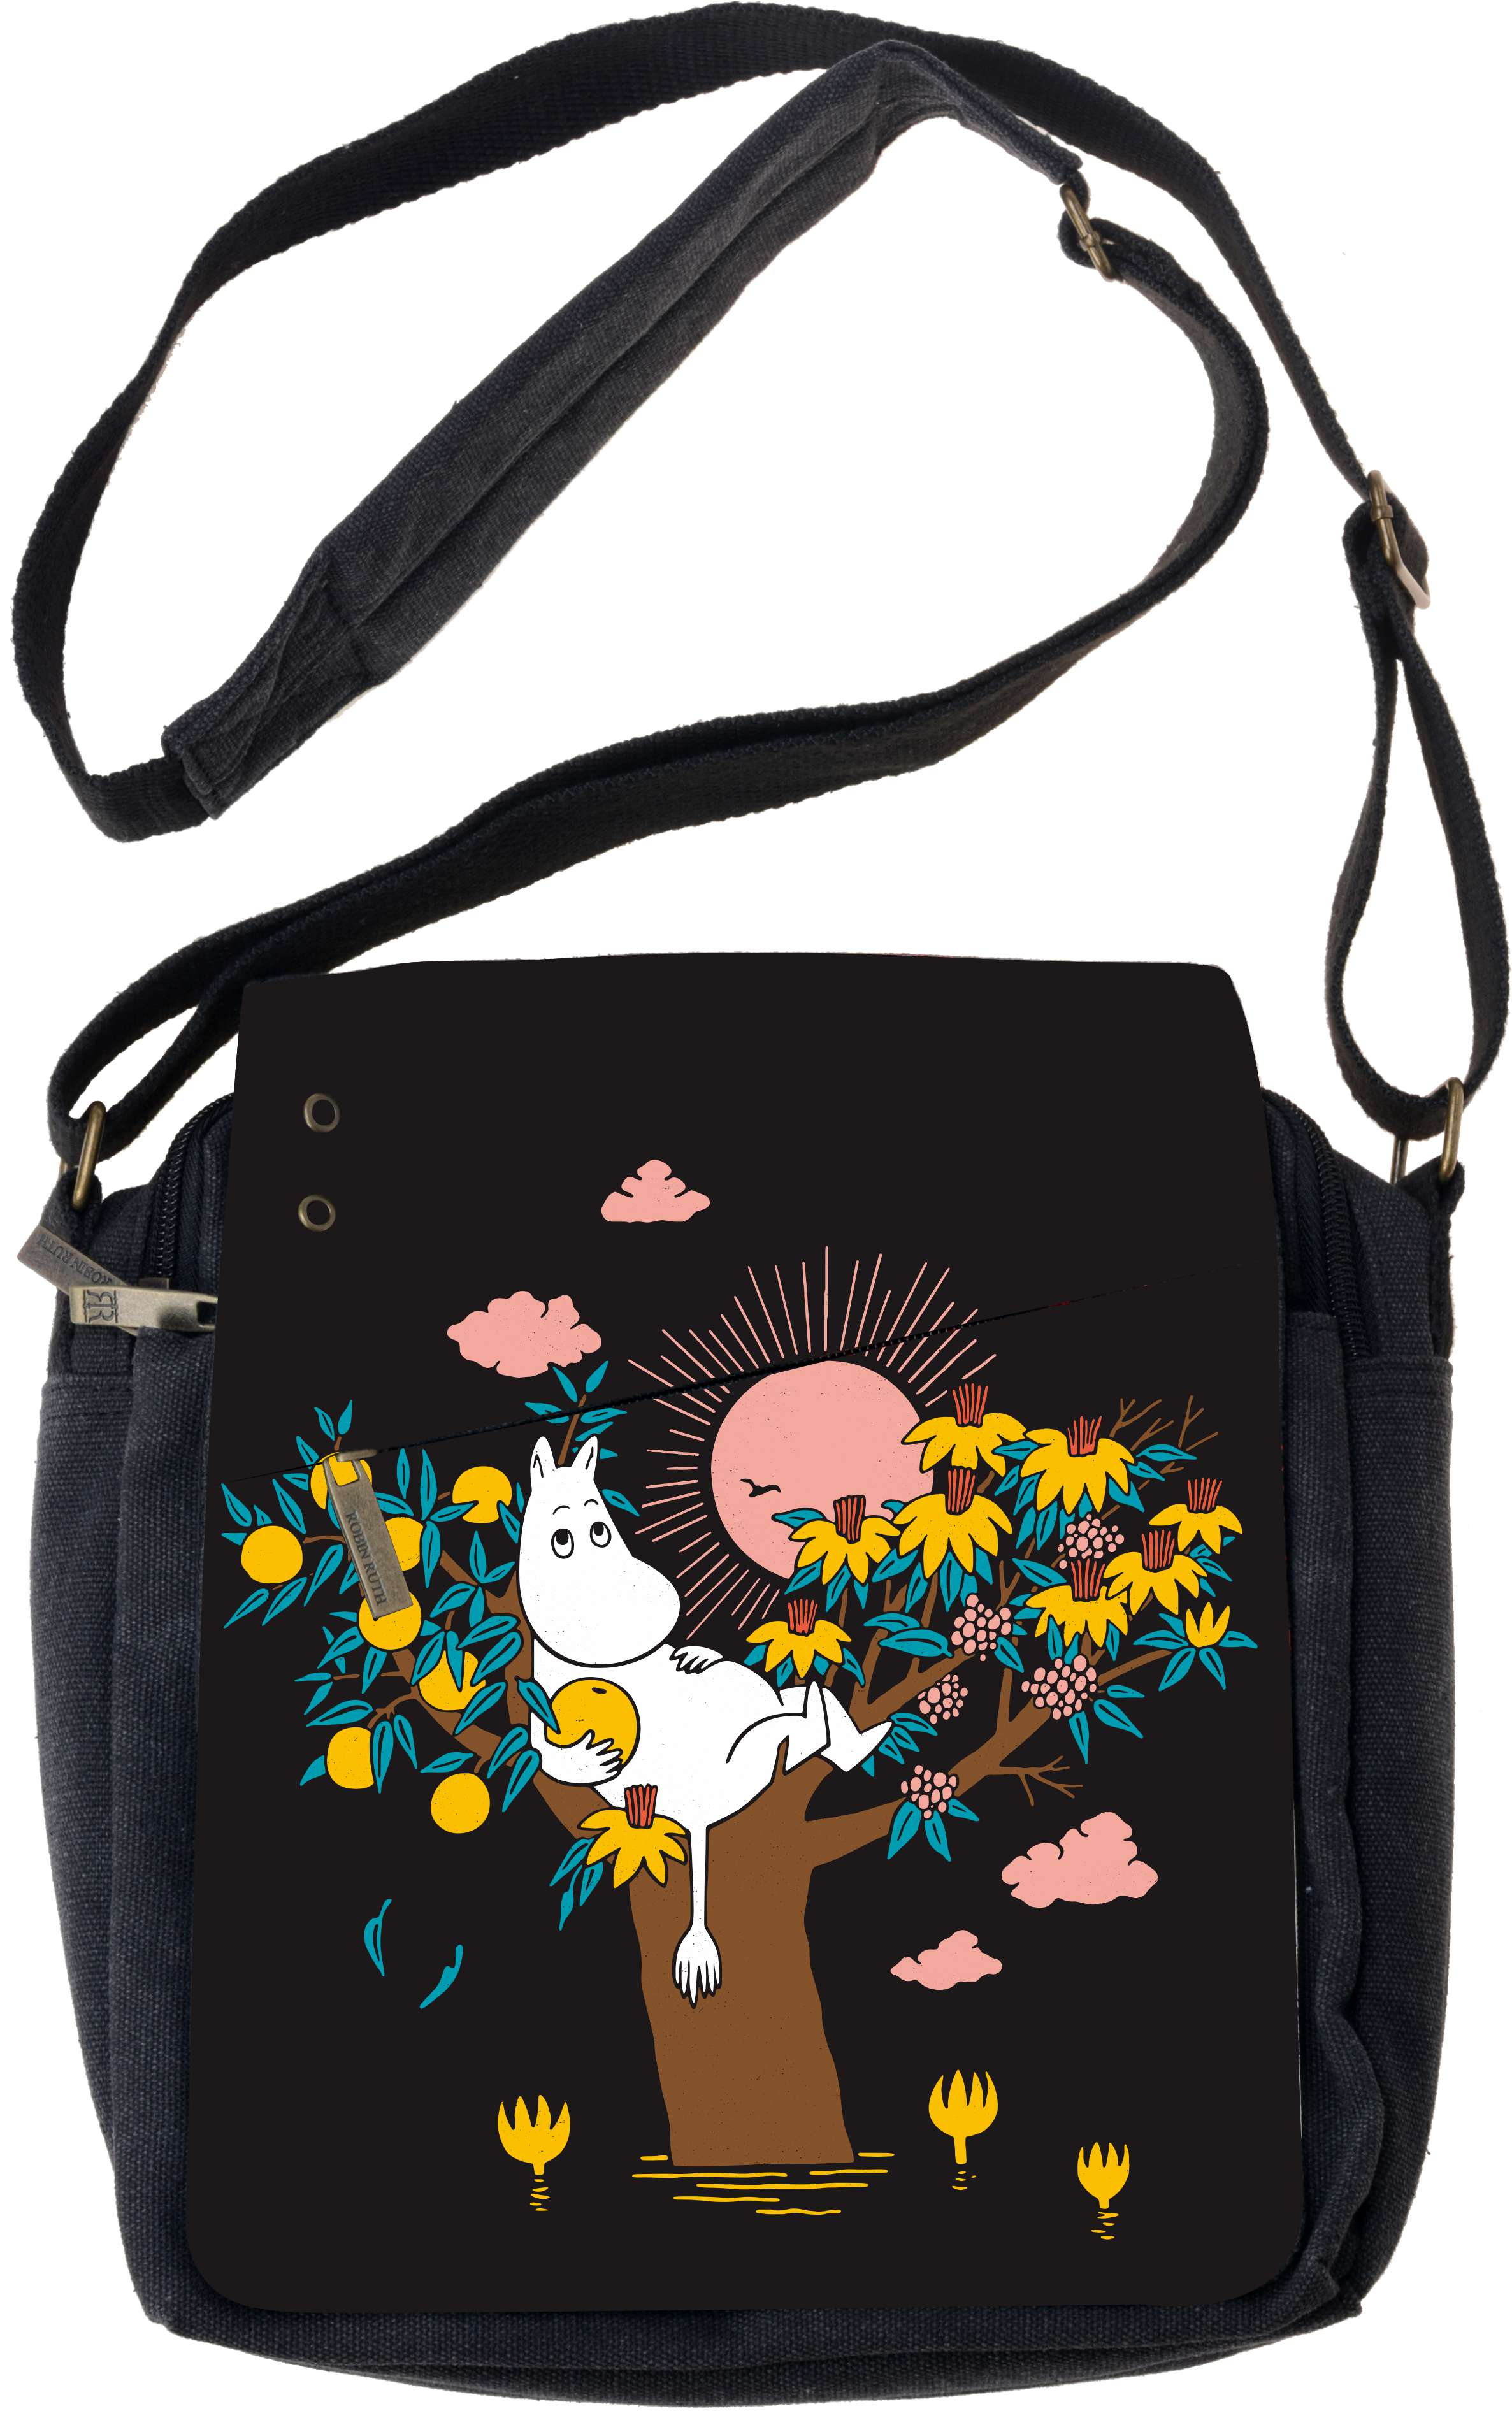 Anglo-Nordic Moomin Travel bag 22x24x8cm